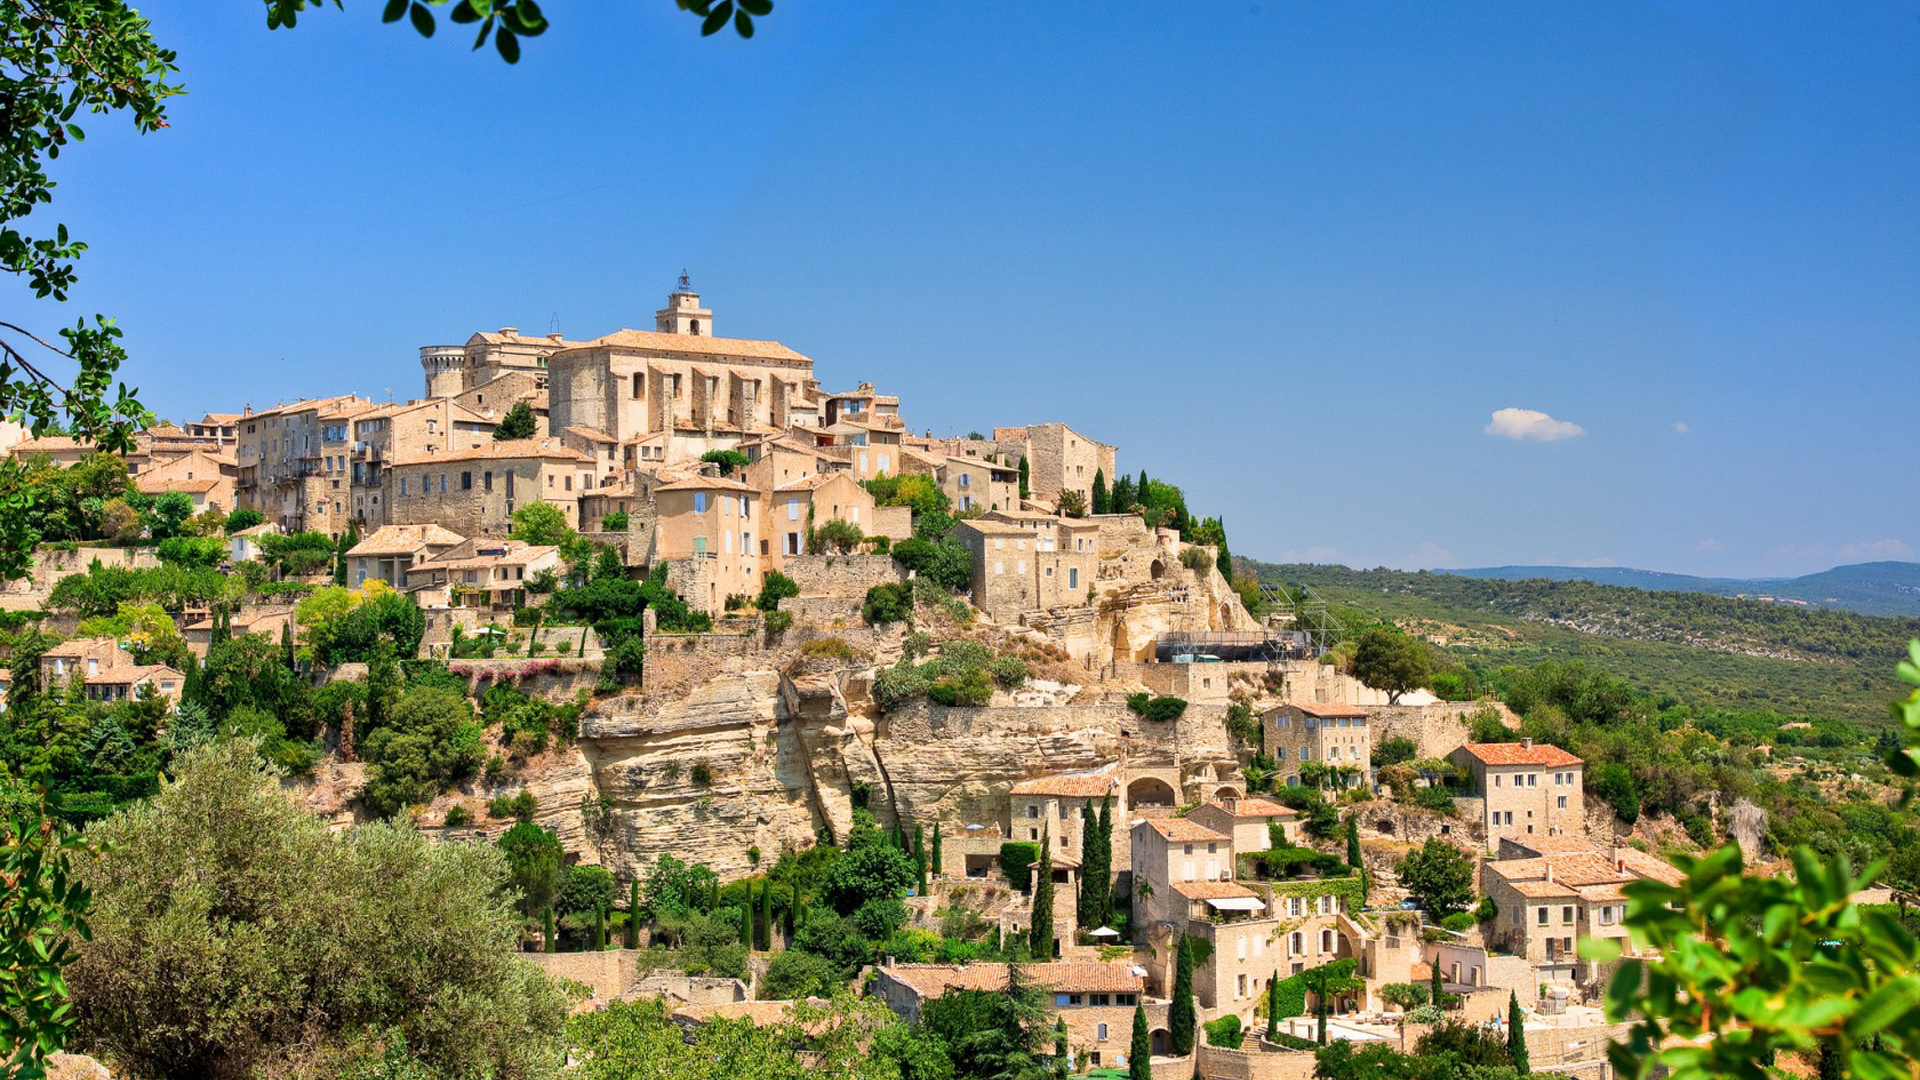 Download Wallpaper Gordes Provence 1920x1080 The Wallpapers 1920x1080